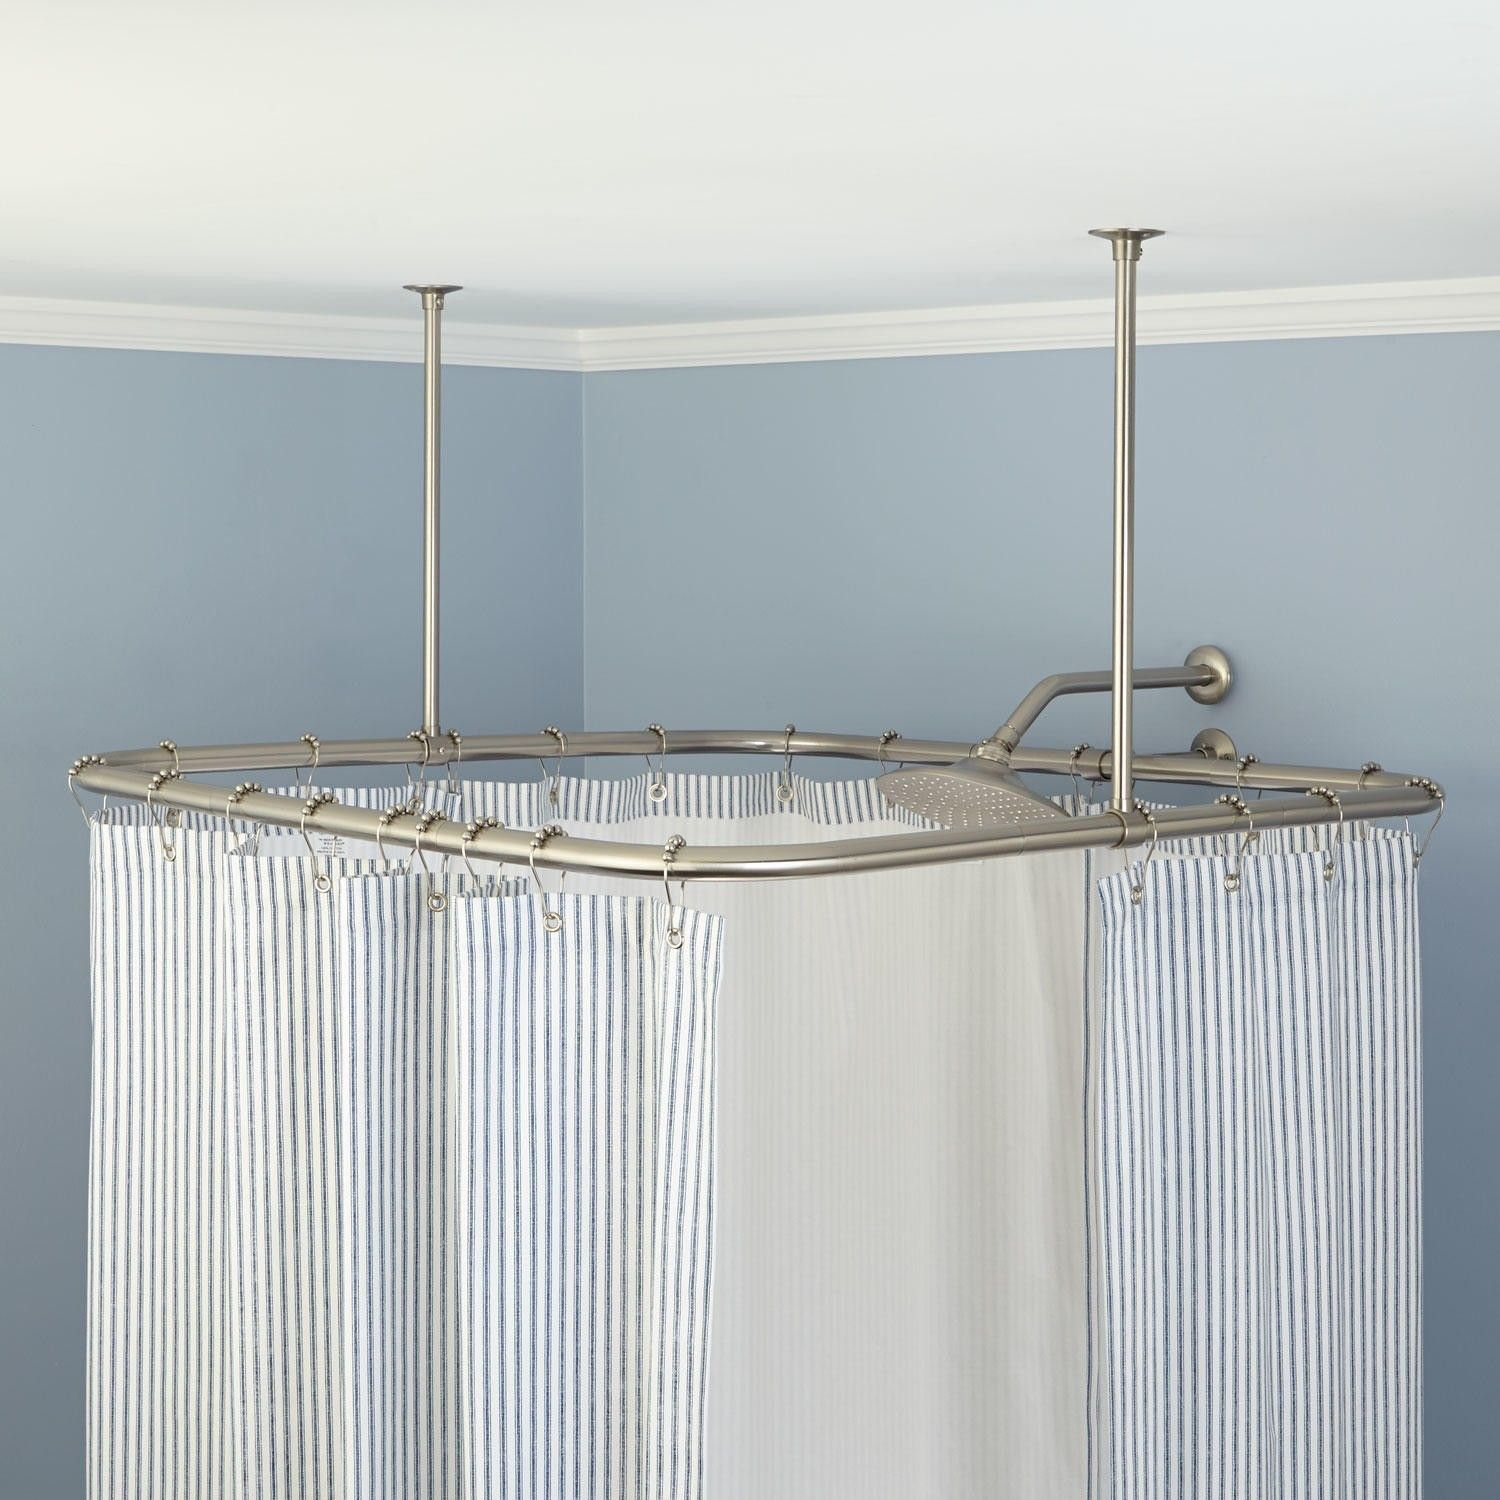 12 Incredible Ideas How To Upgrade Ceiling Shower Curtain Track